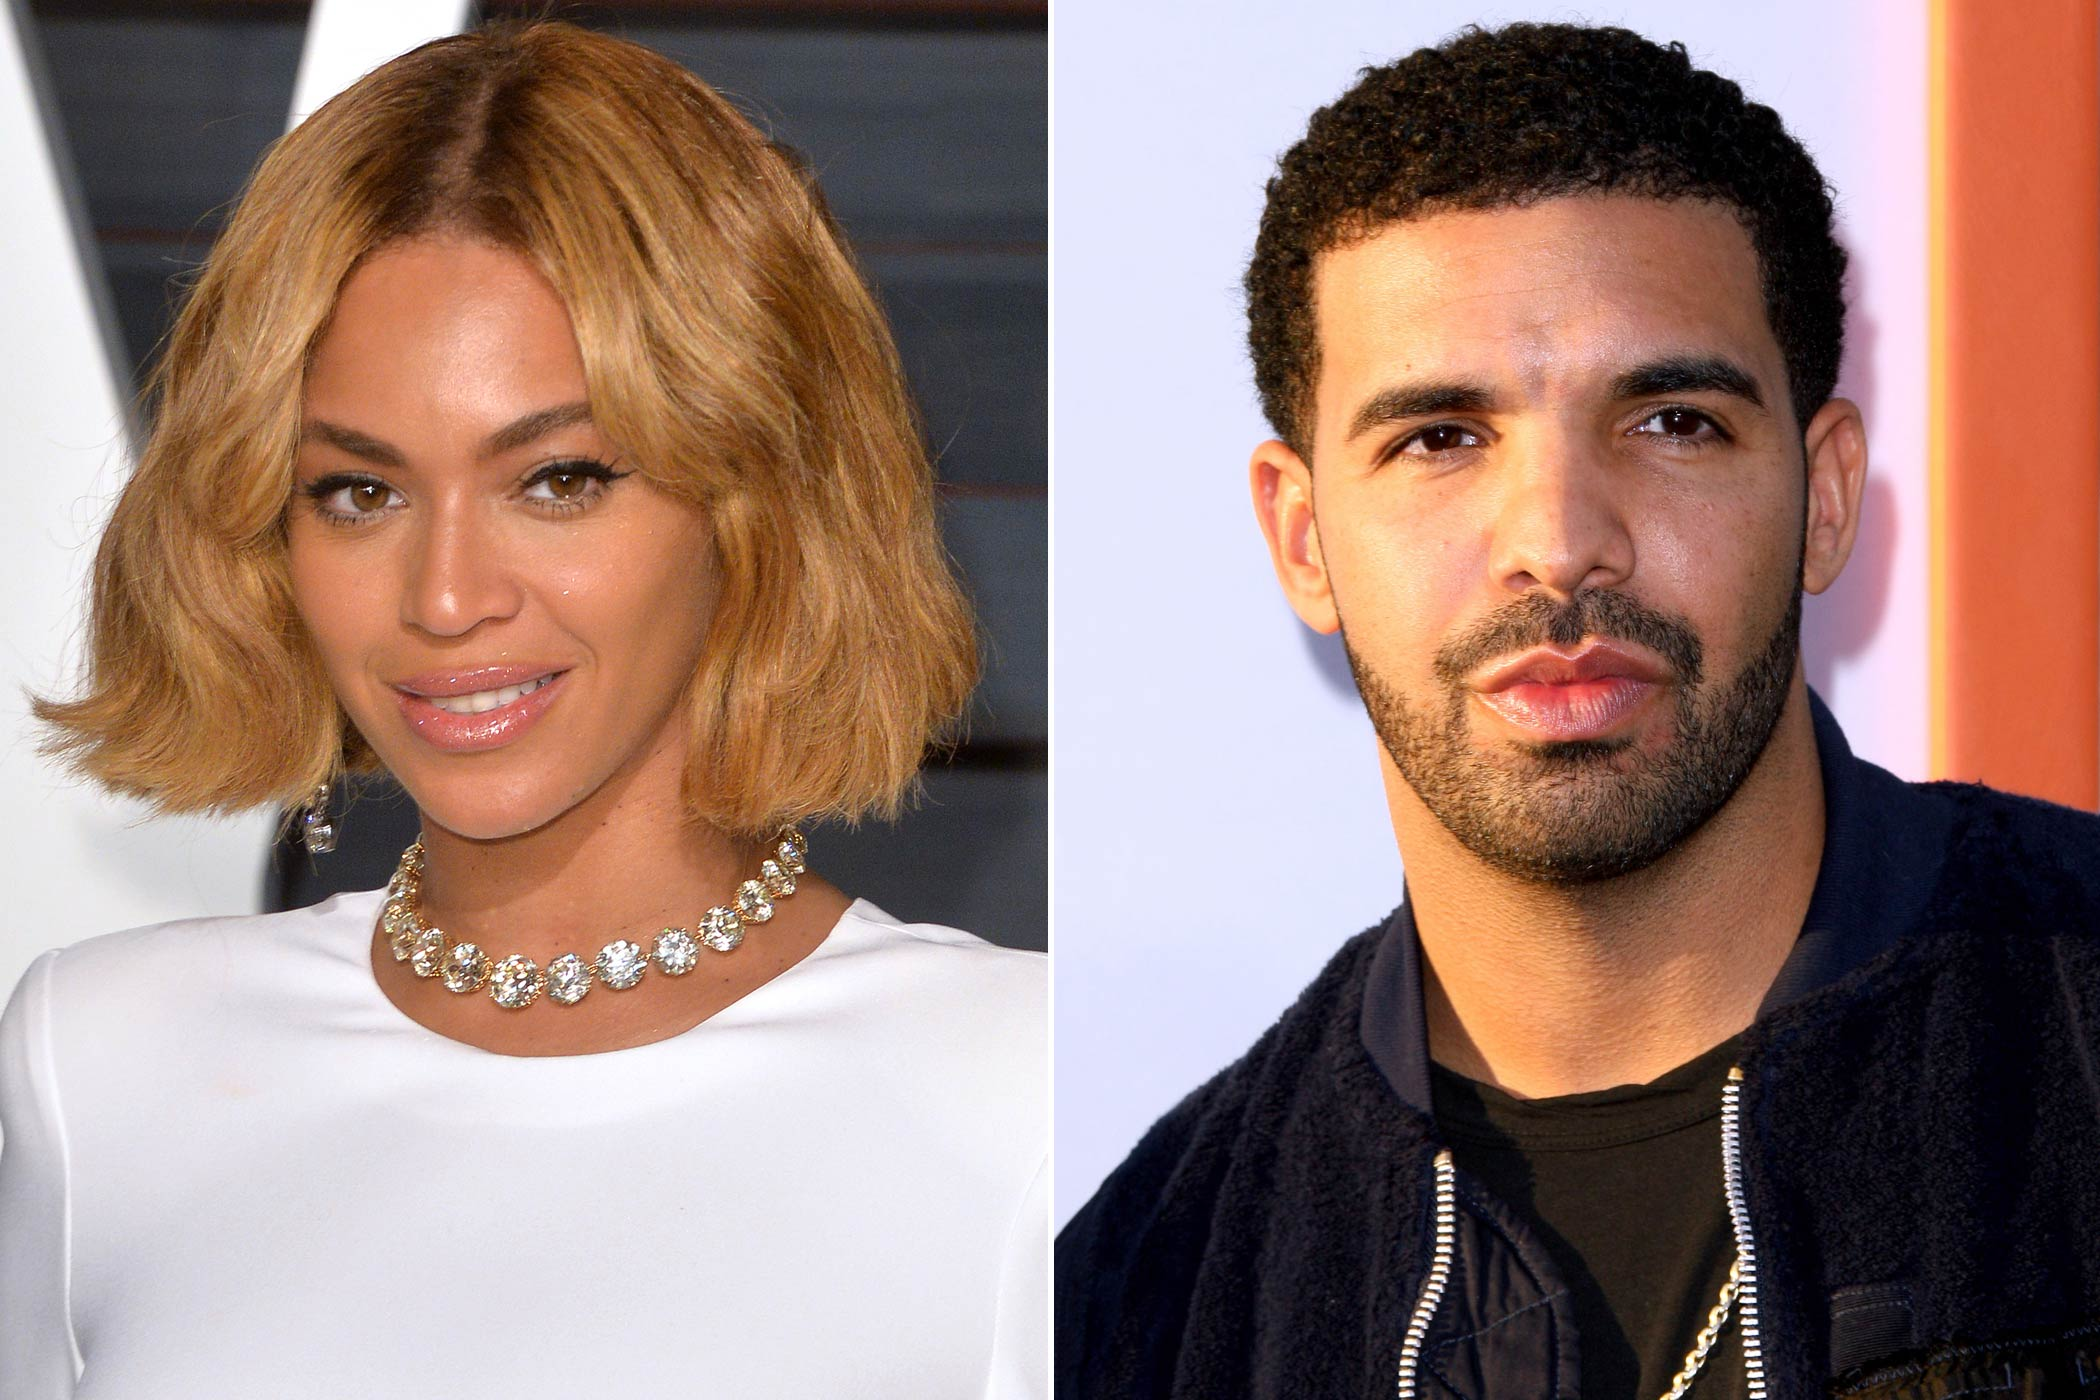 From left: Beyoncé and Drake